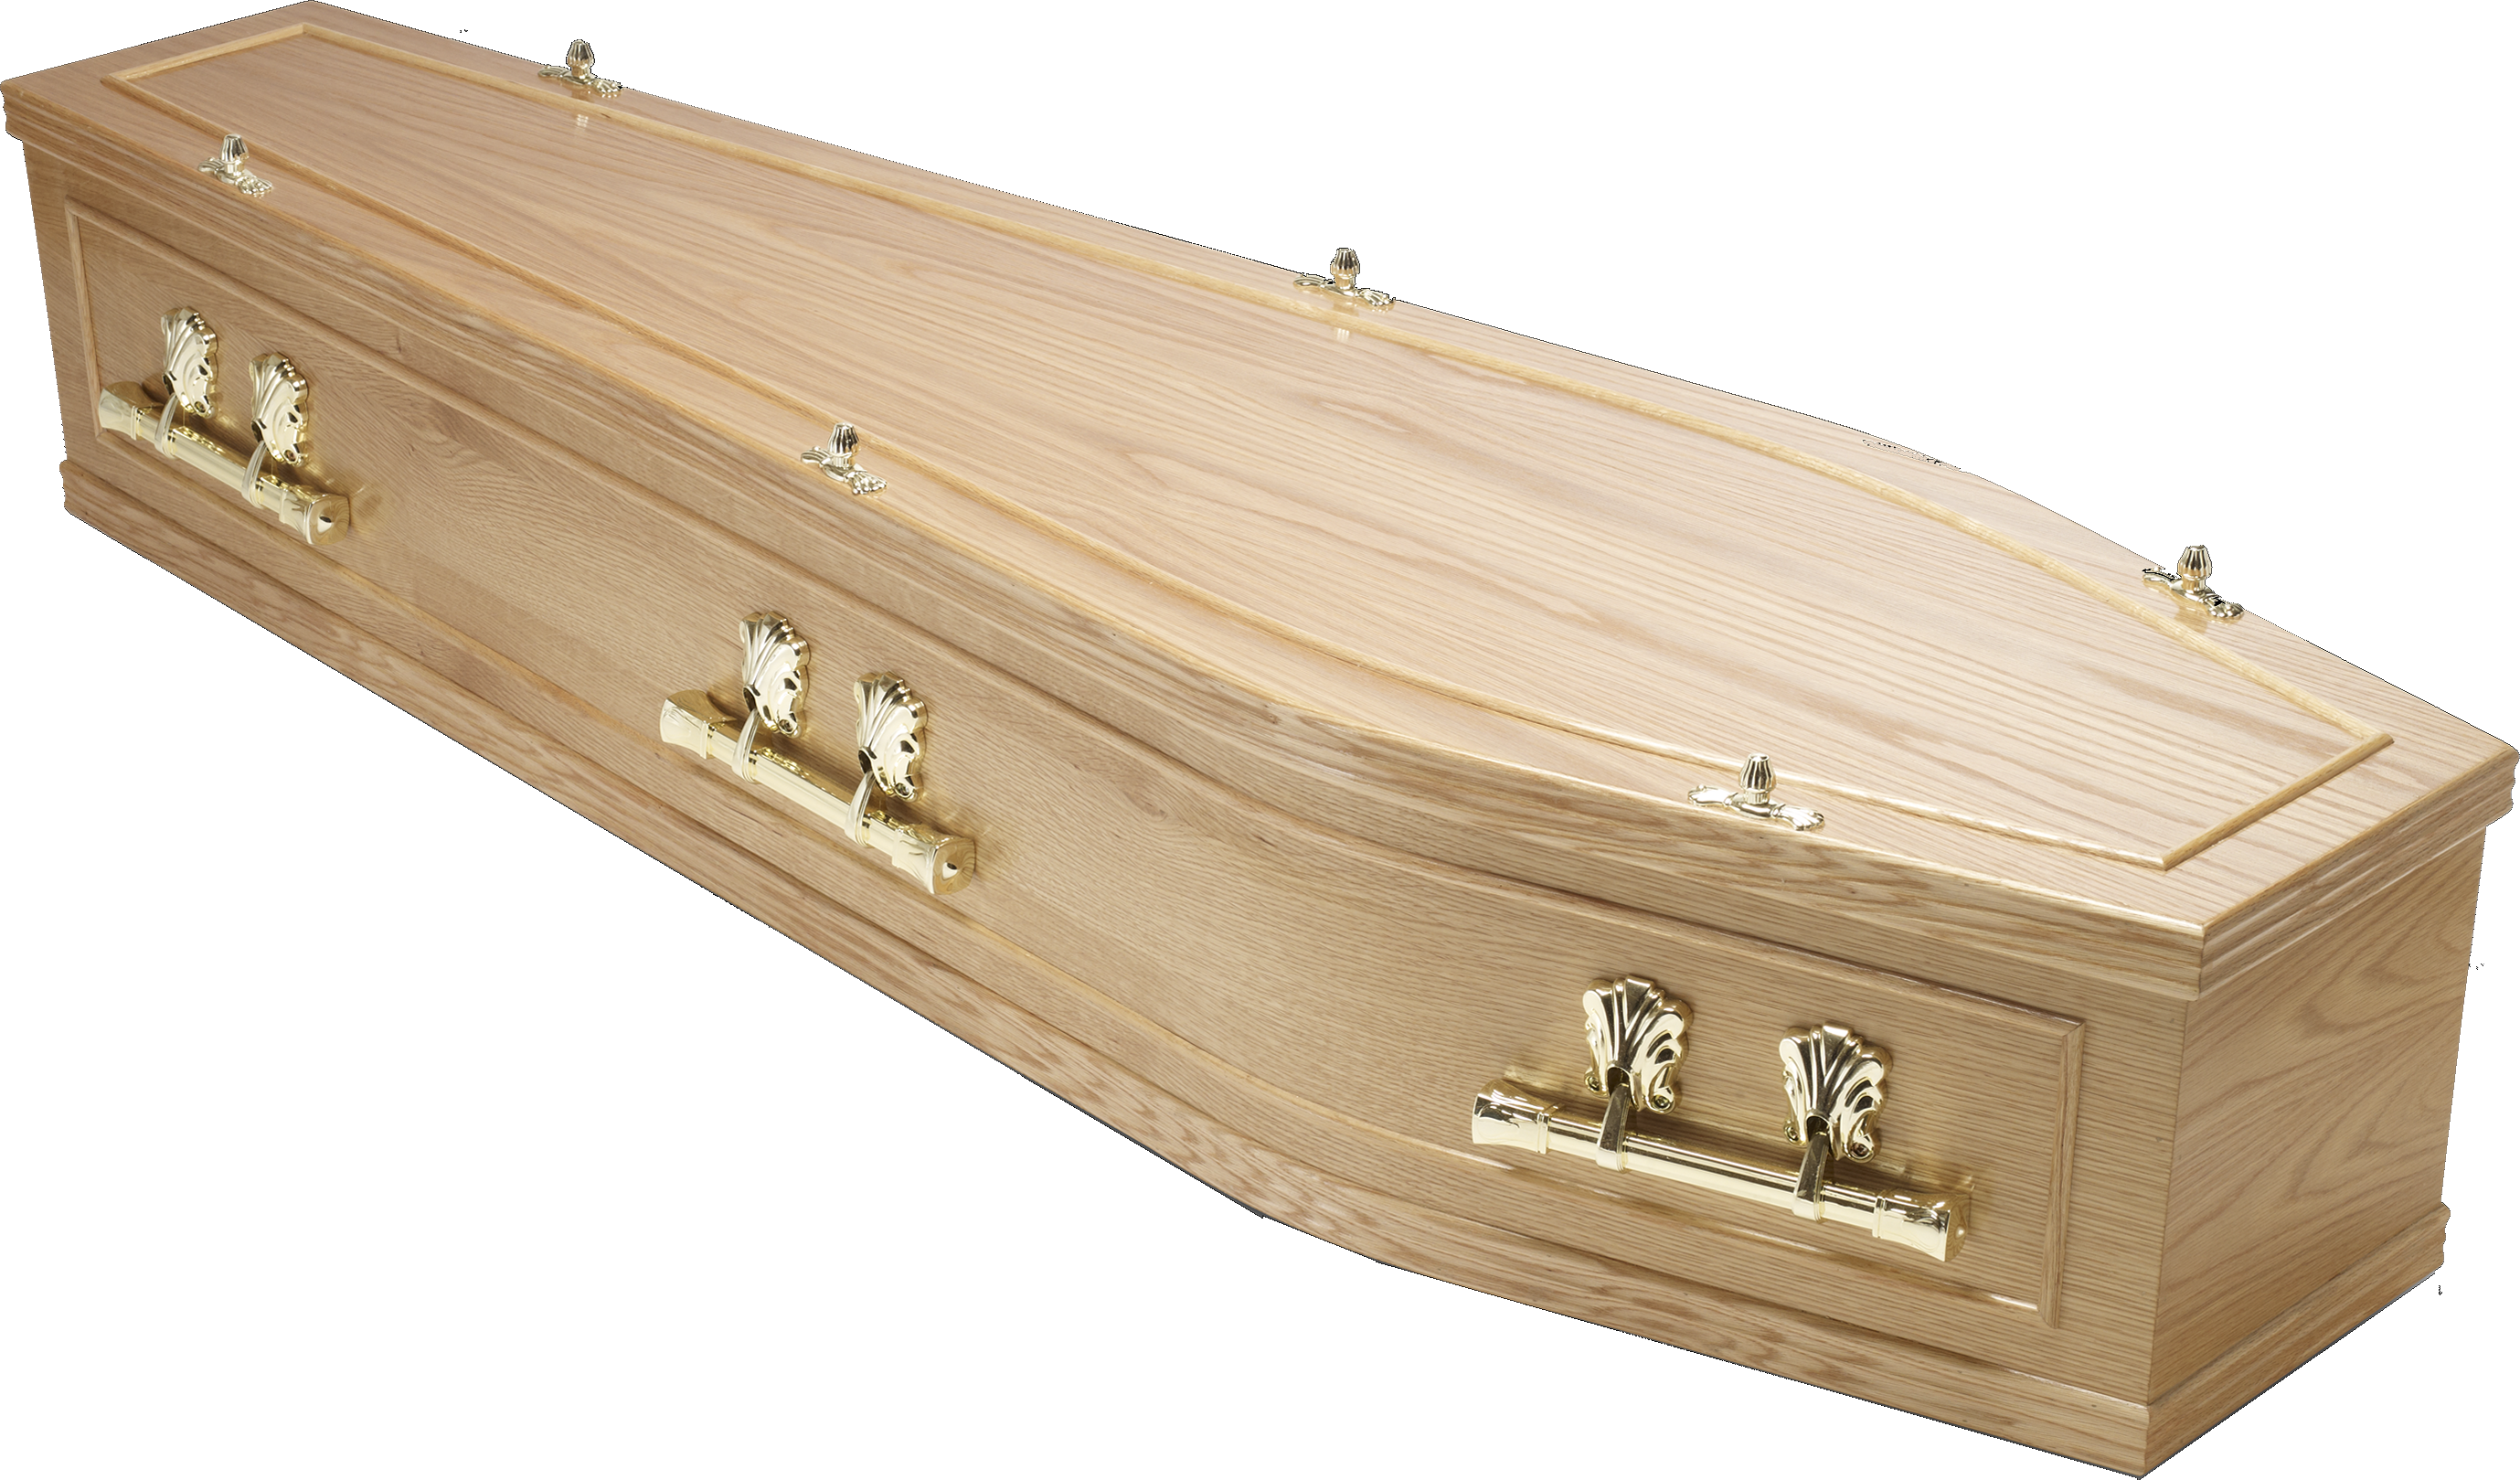 Transparent coffin english. Traditional wood coffins compare